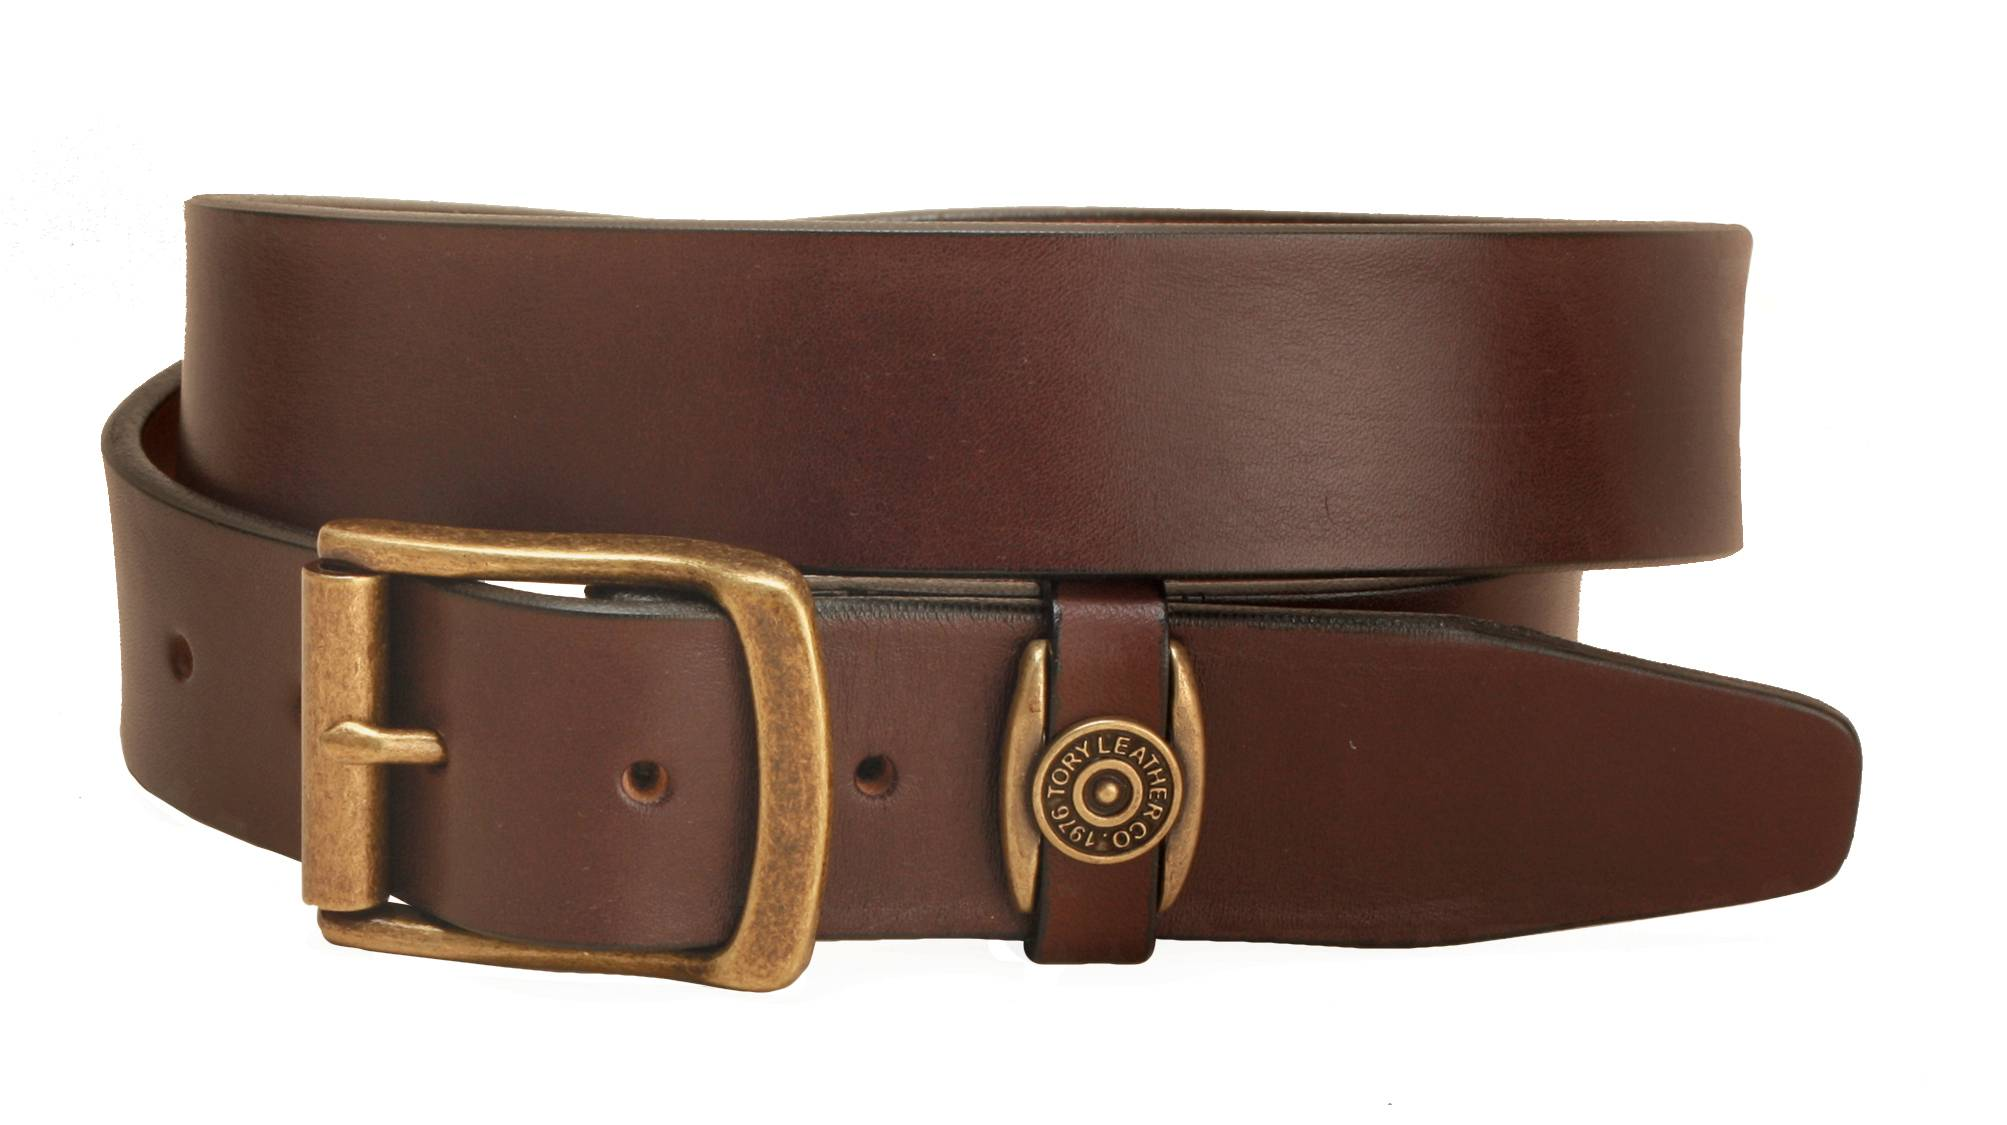 Tory Leather Strap Belt With Signature Keeper